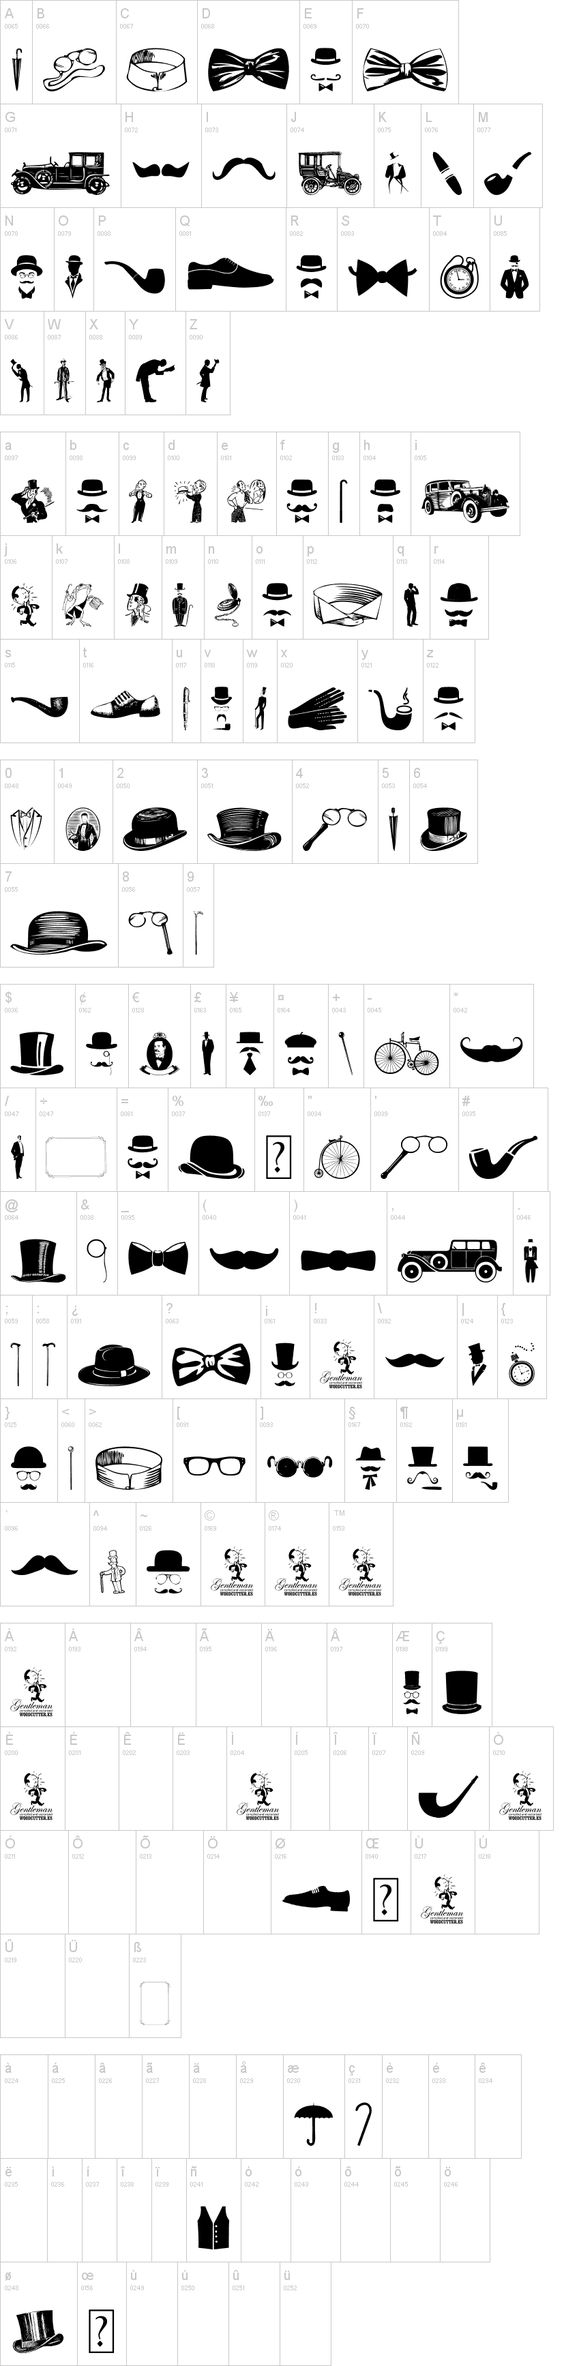 Knitting Font Dafont : Gentleman icons and bow ties on pinterest